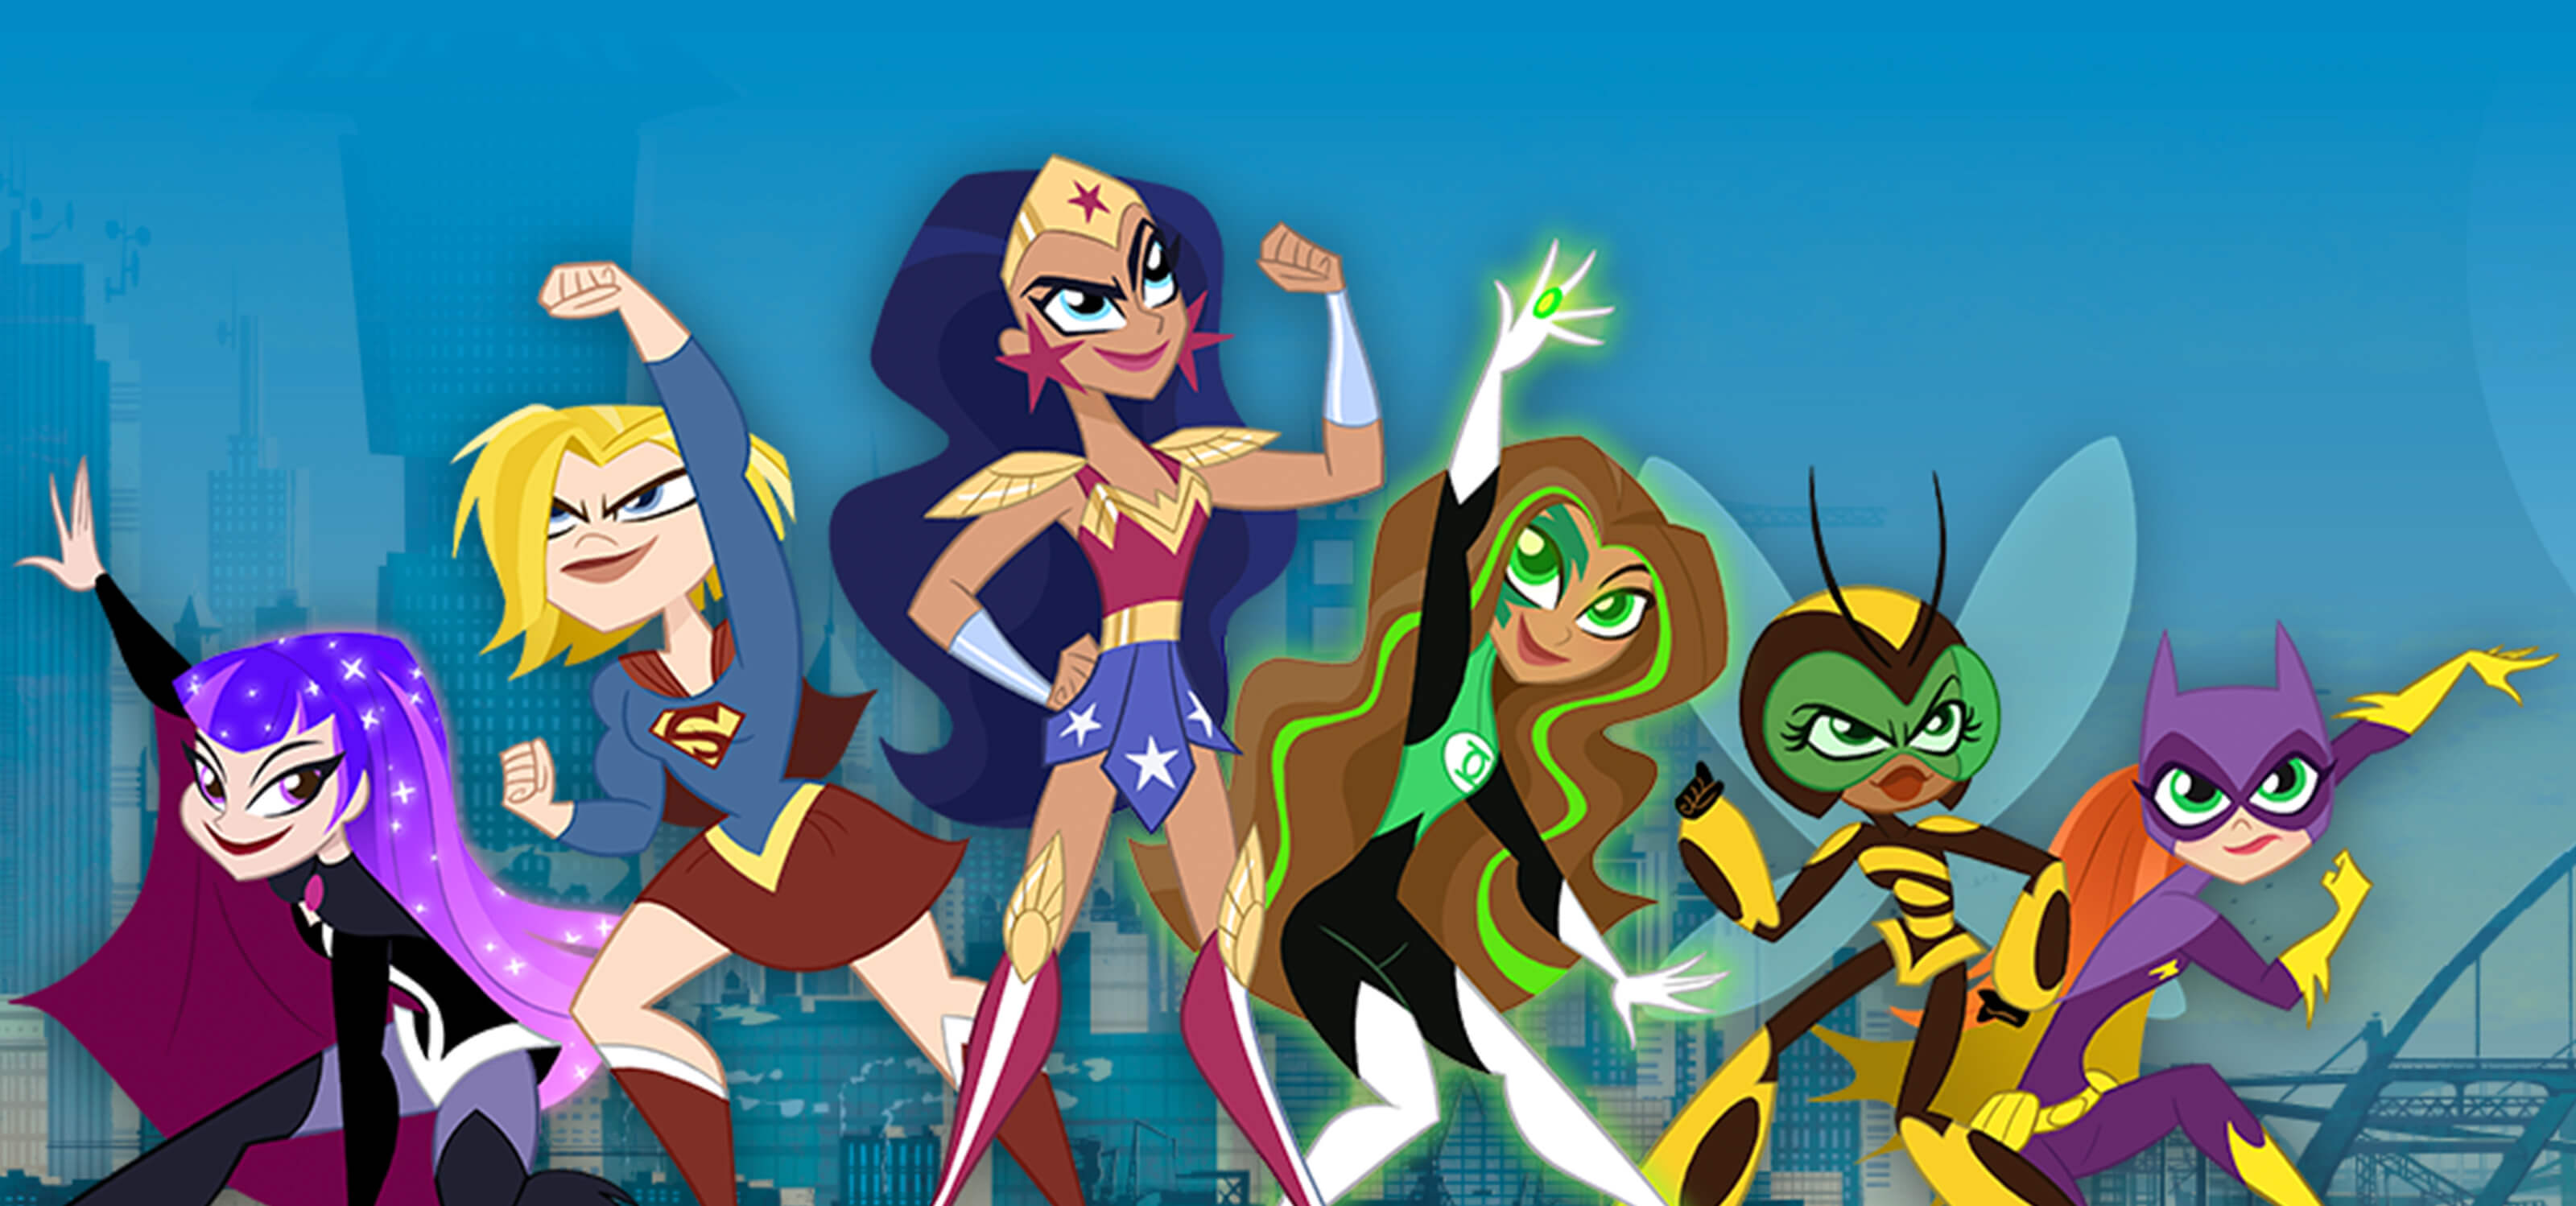 The cartoon cast of DC Super Hero Girls in various action poses.